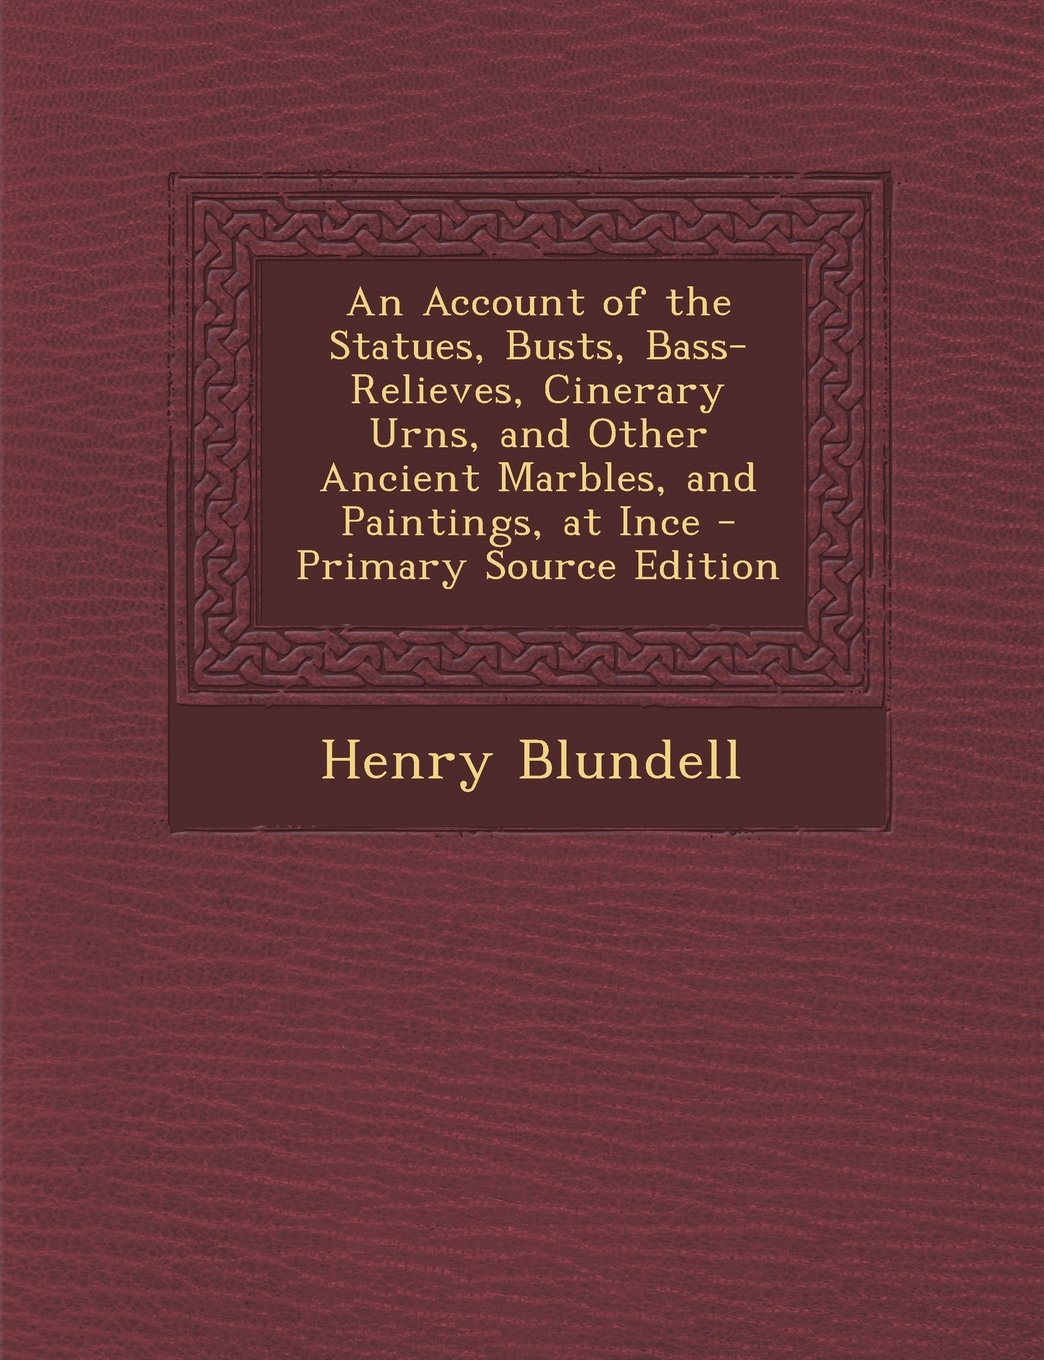 An Account of the Statues, Busts, Bass-Relieves, Cinerary Urns, and Other Ancient Marbles, and Paintings, at Ince - Primary Source Edition PDF